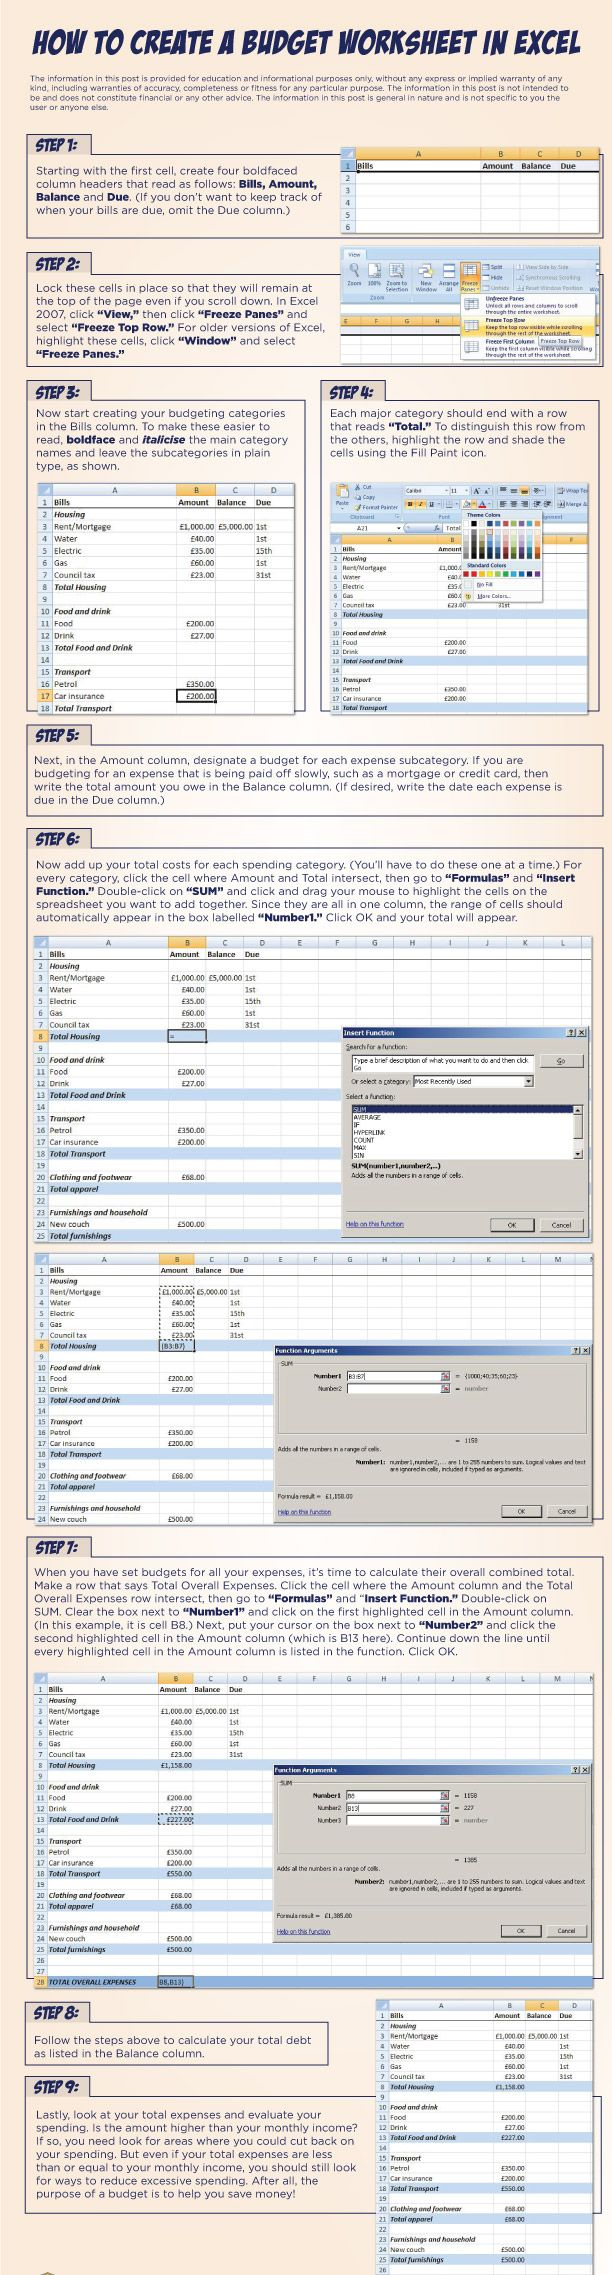 learn how to create a budget worksheet in excel step by step